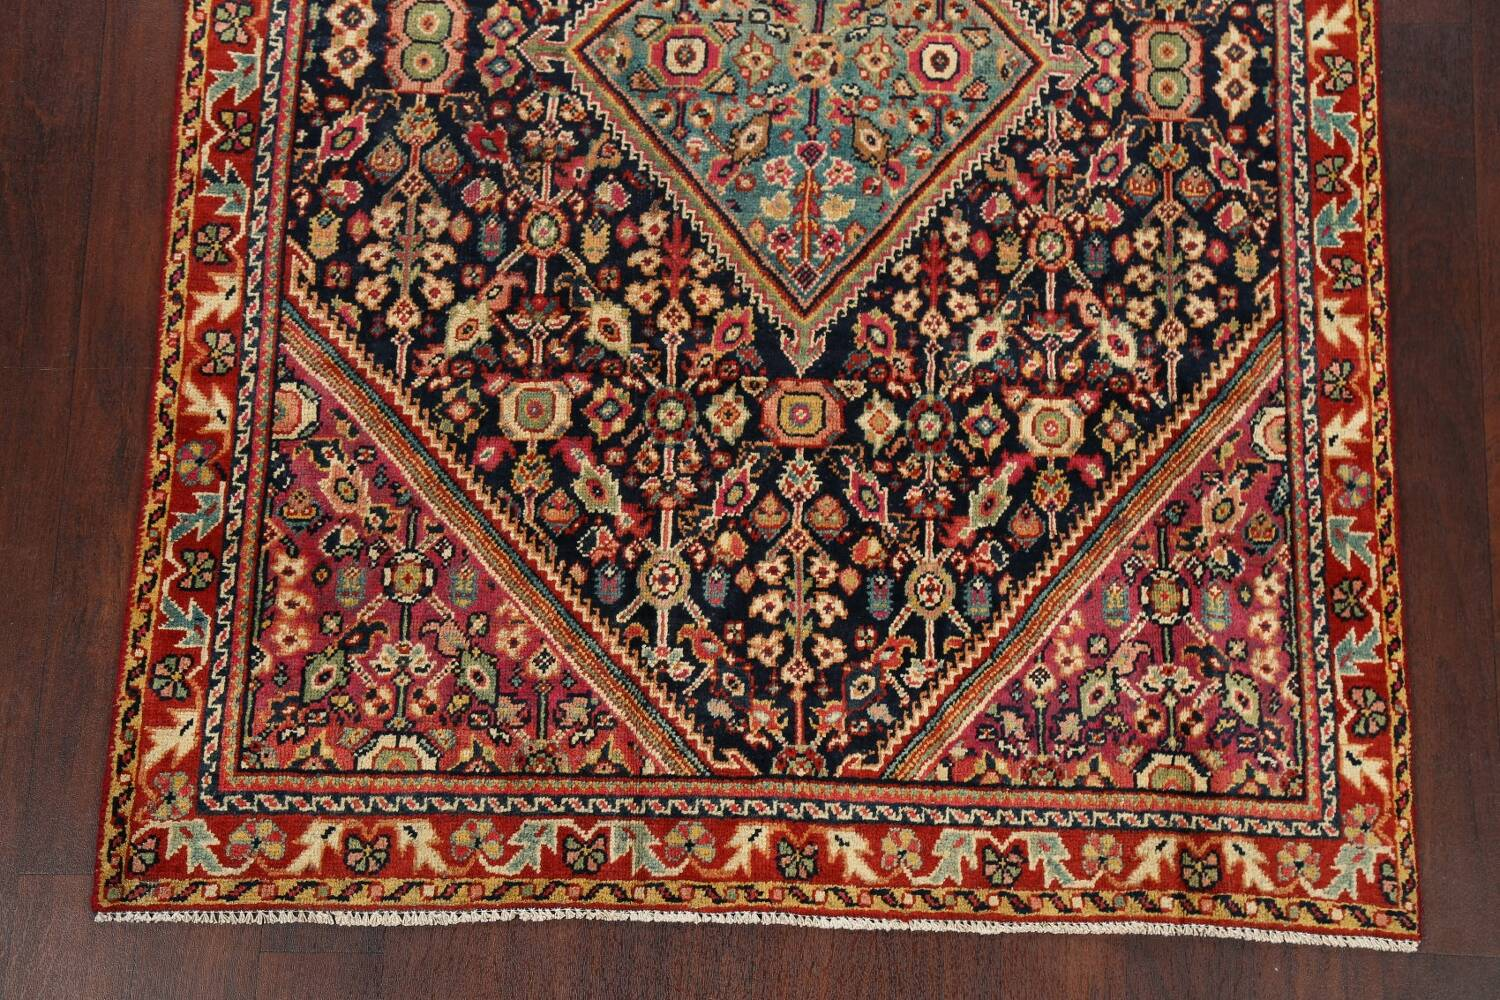 100% Vegetable Dye Antique Sultanabad Persian Area Rug 4x6 image 8